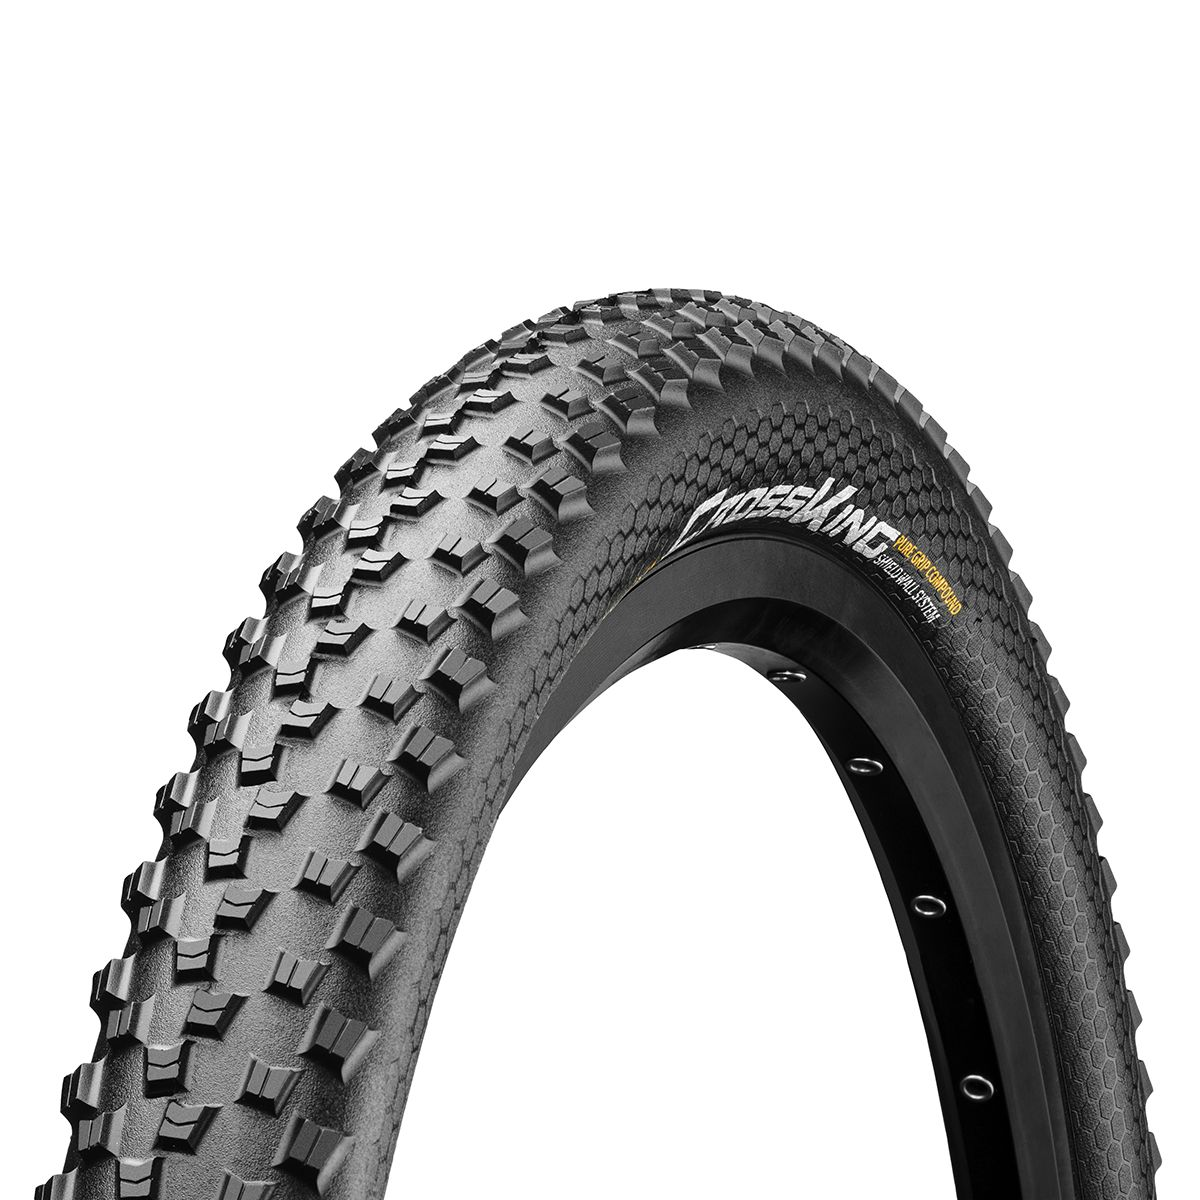 Cross King ShieldWall Folding MTB Tyre